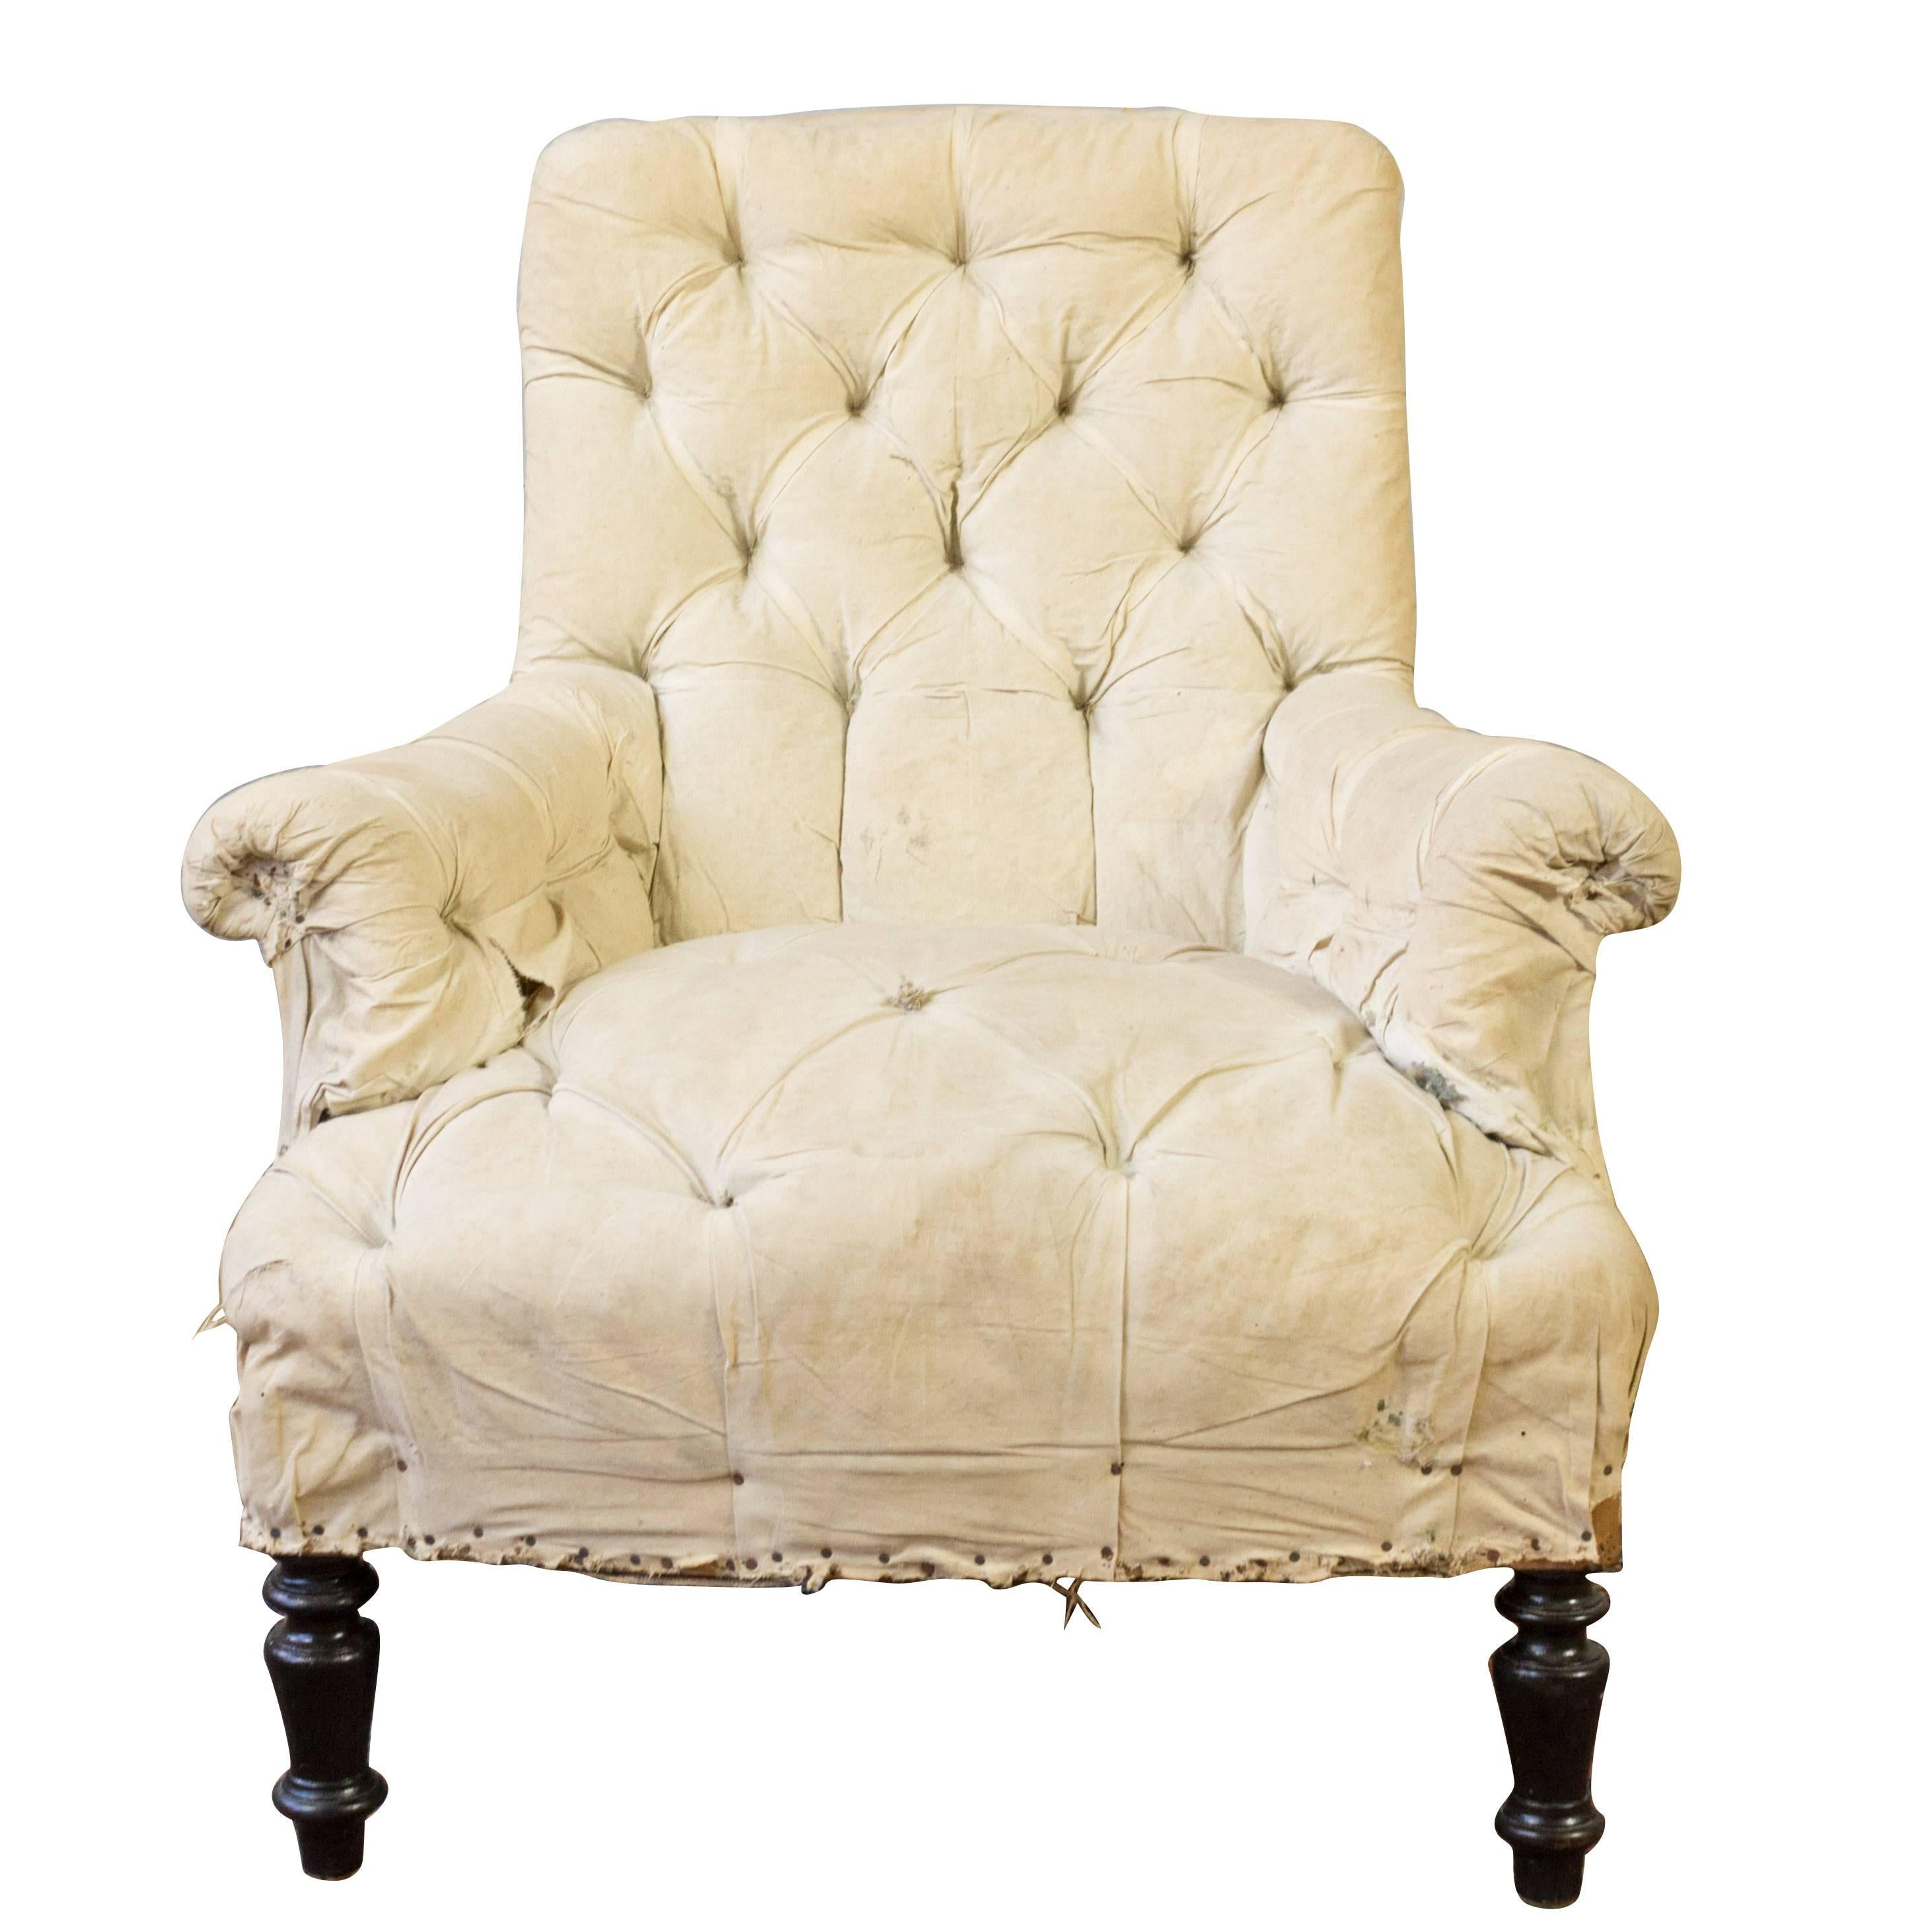 Single 19th Century Tufted French Armchair For Sale